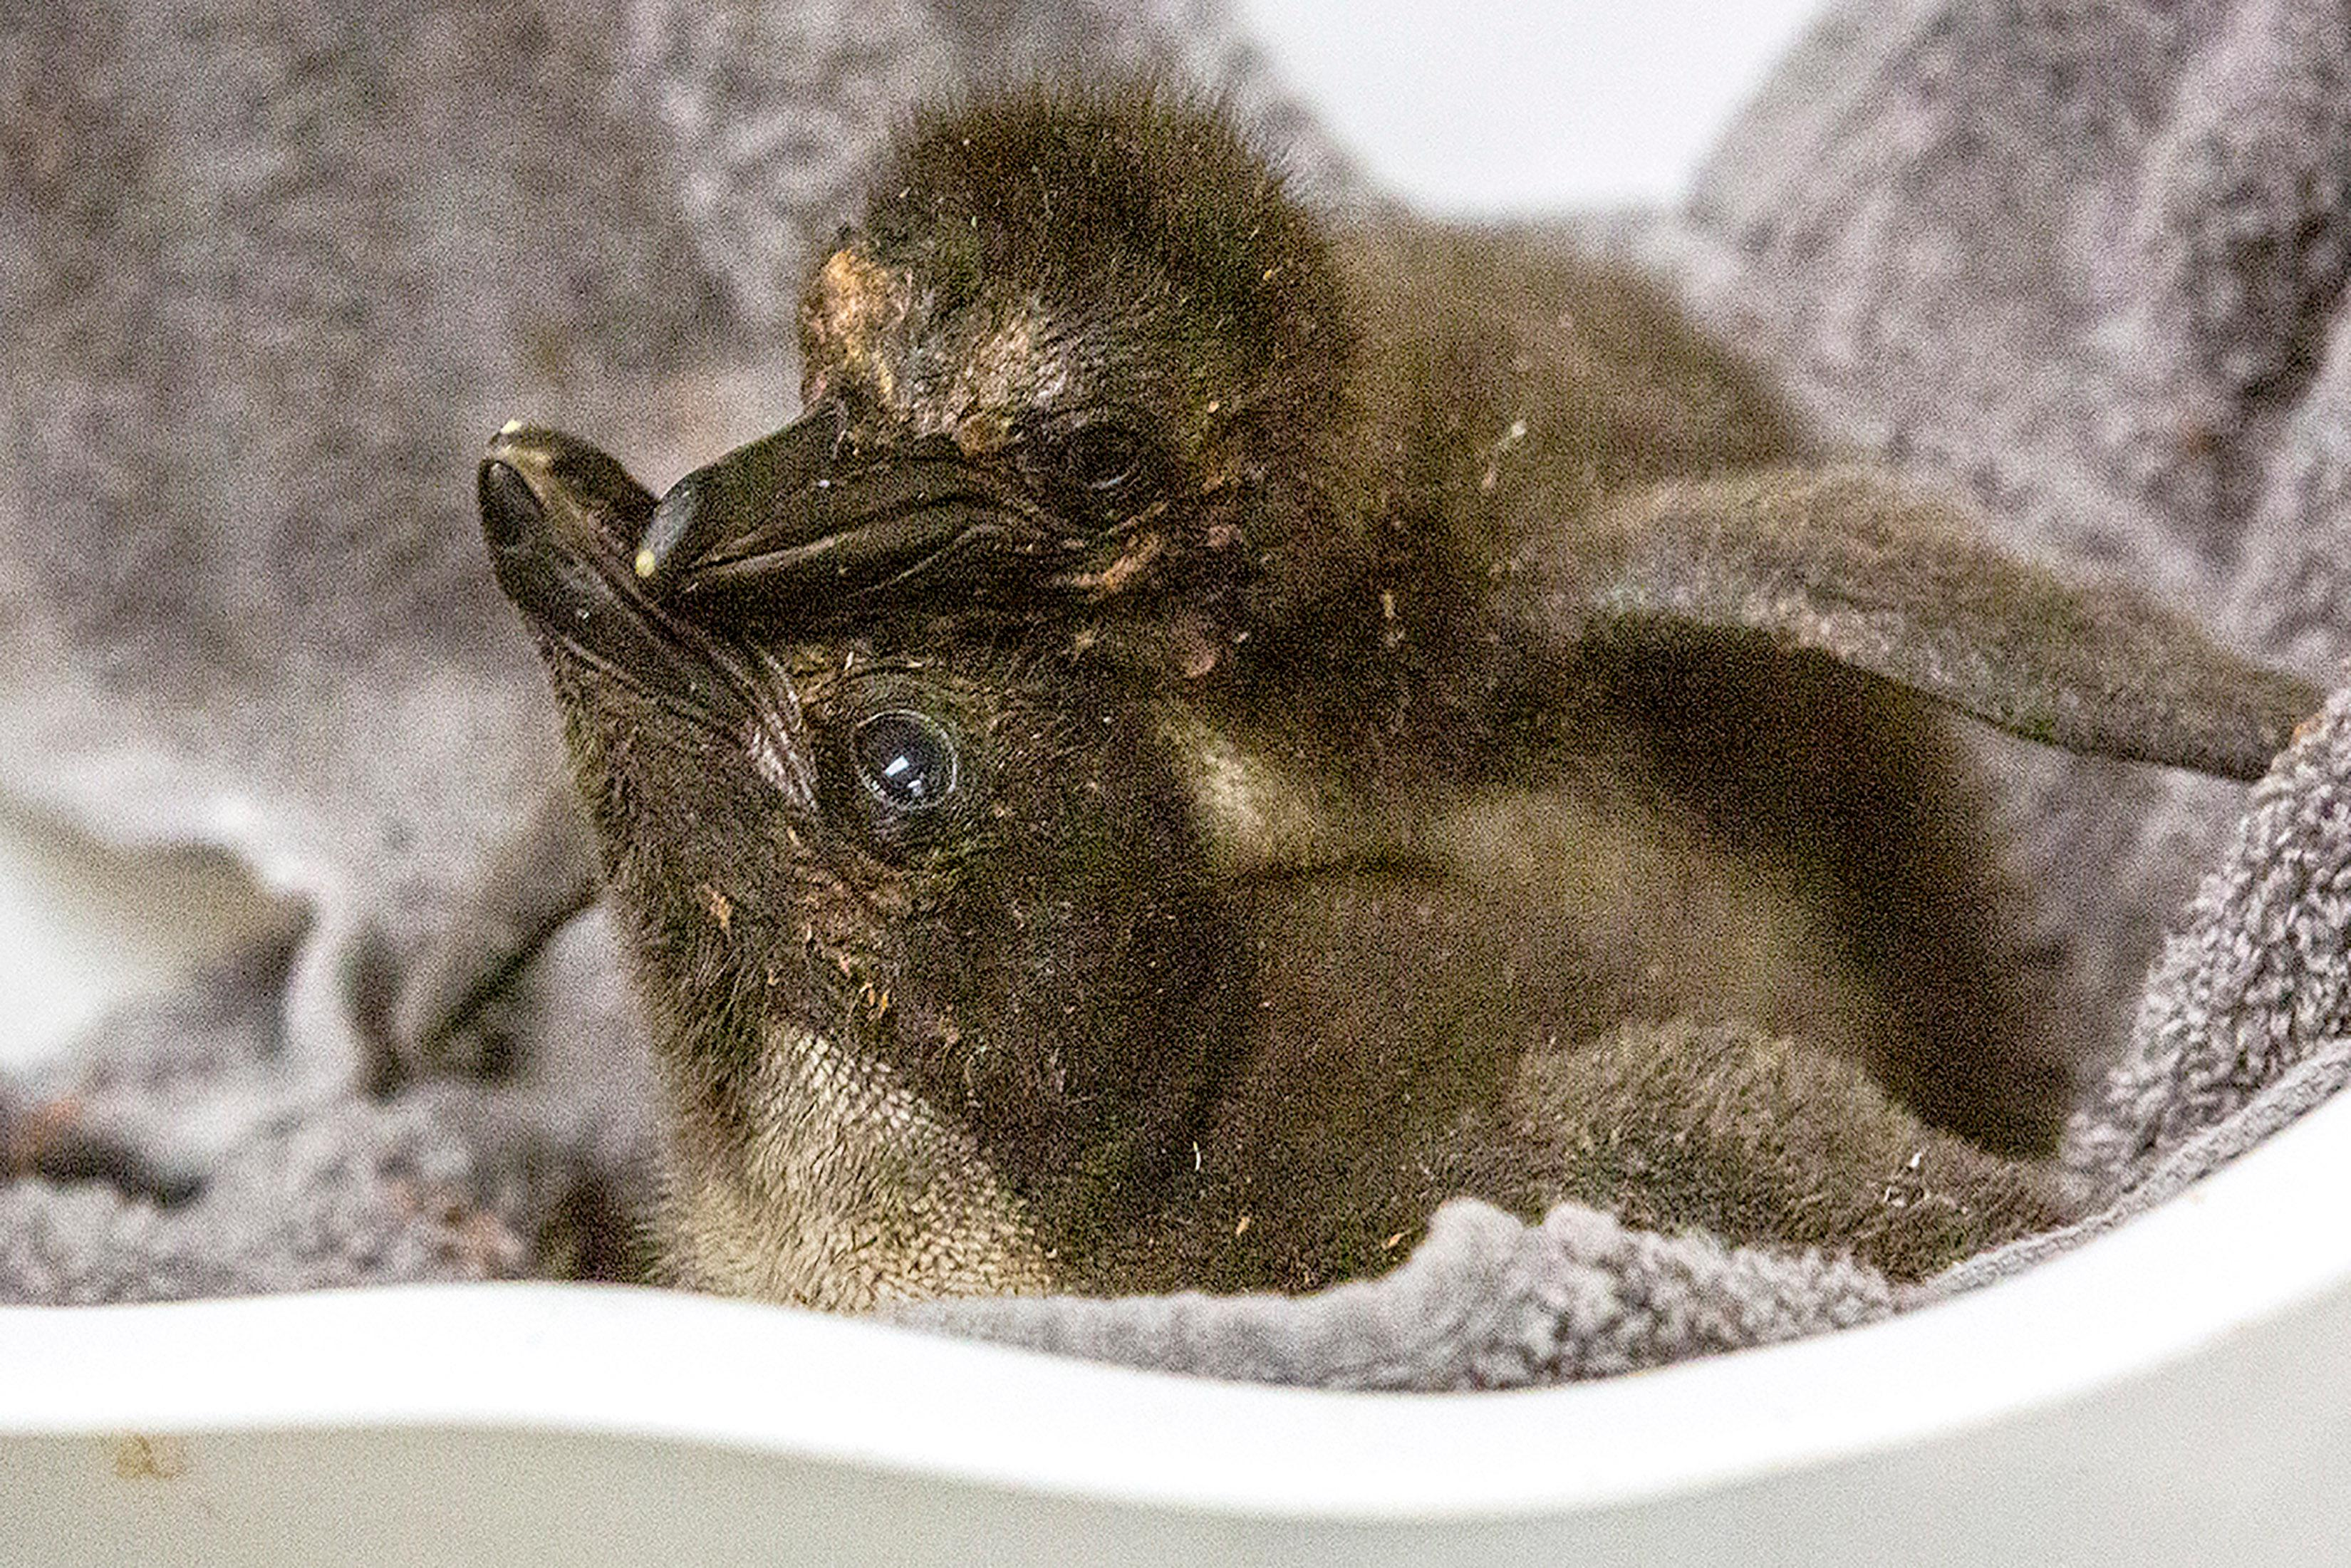 In this undated photo provided by the Kansas City Zoo, two Macaroni penguin chicks are cared for just days after their birth at the zoo in Kansas City, Kansas. For the first time in the zoo's 110-year history, the zoo is home to Macaroni penguins from eggs provided by SeaWorld San Diego, that hatched eight fluffy chicks in incubators. (Kansas City Zoo via AP)